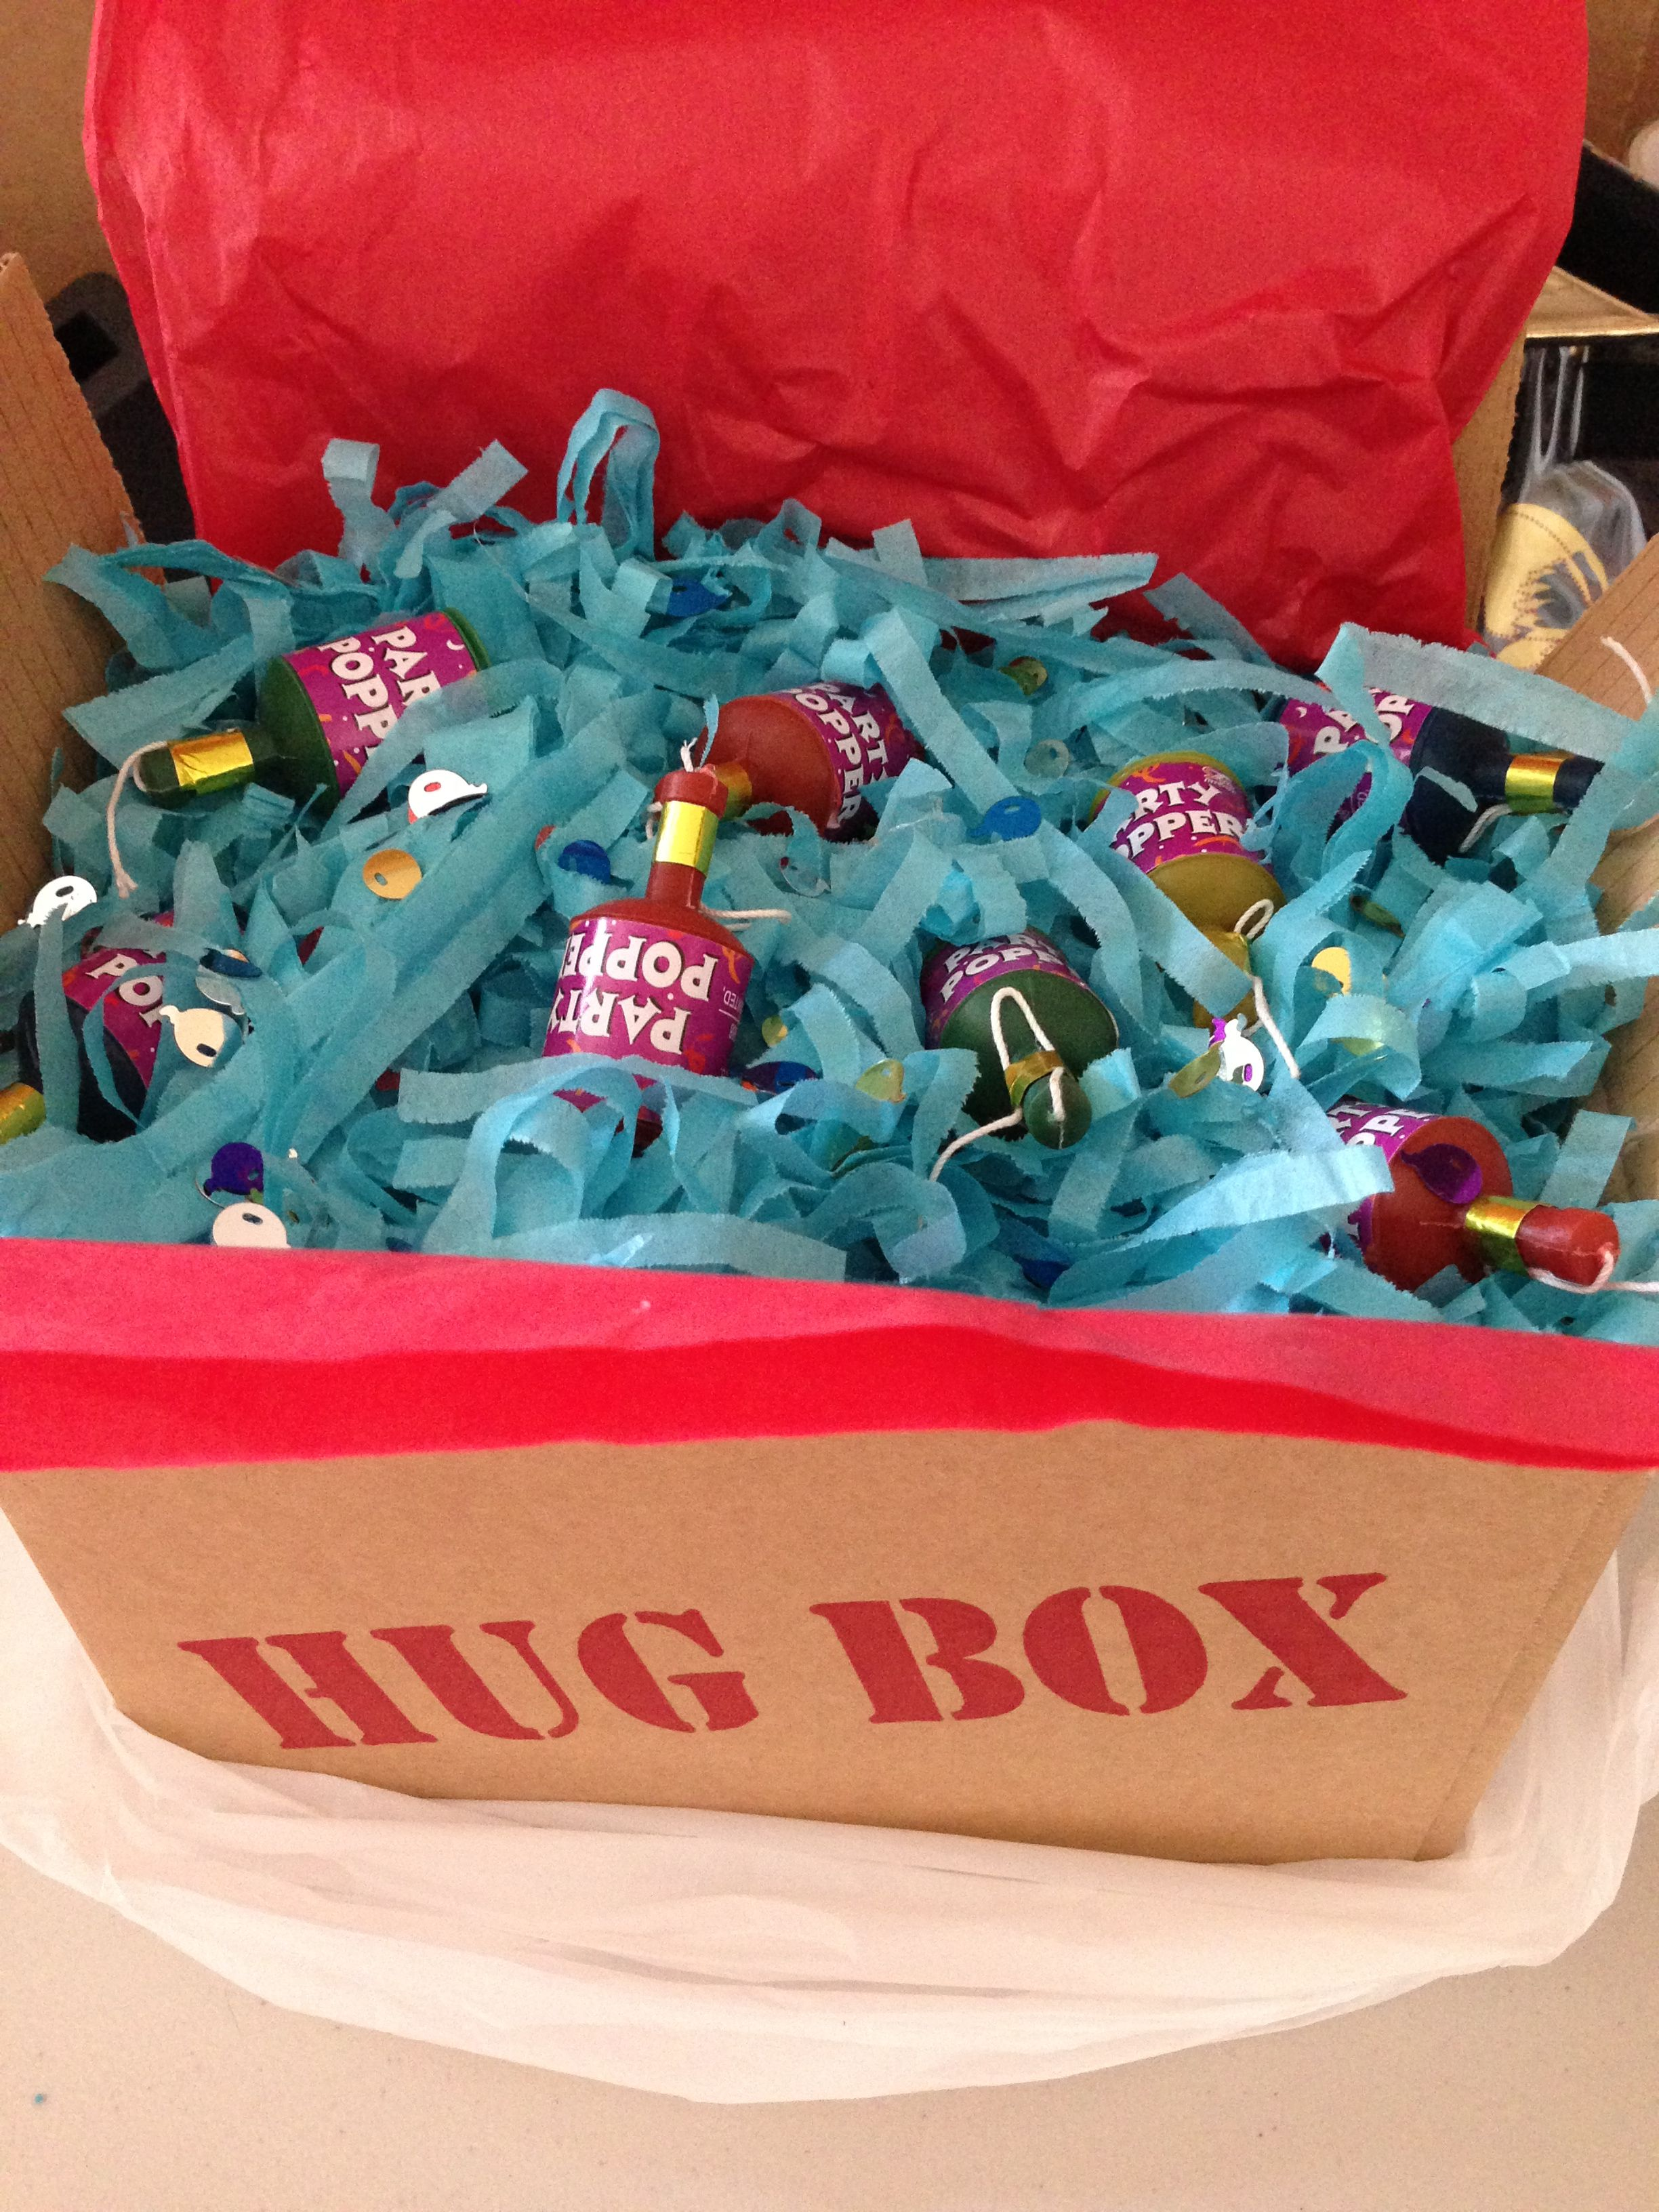 Sweets Treats Chocolates Delivered Hampers Gifts Birthdays Parties Weddings Get Well Congratulations HugBoxcouk